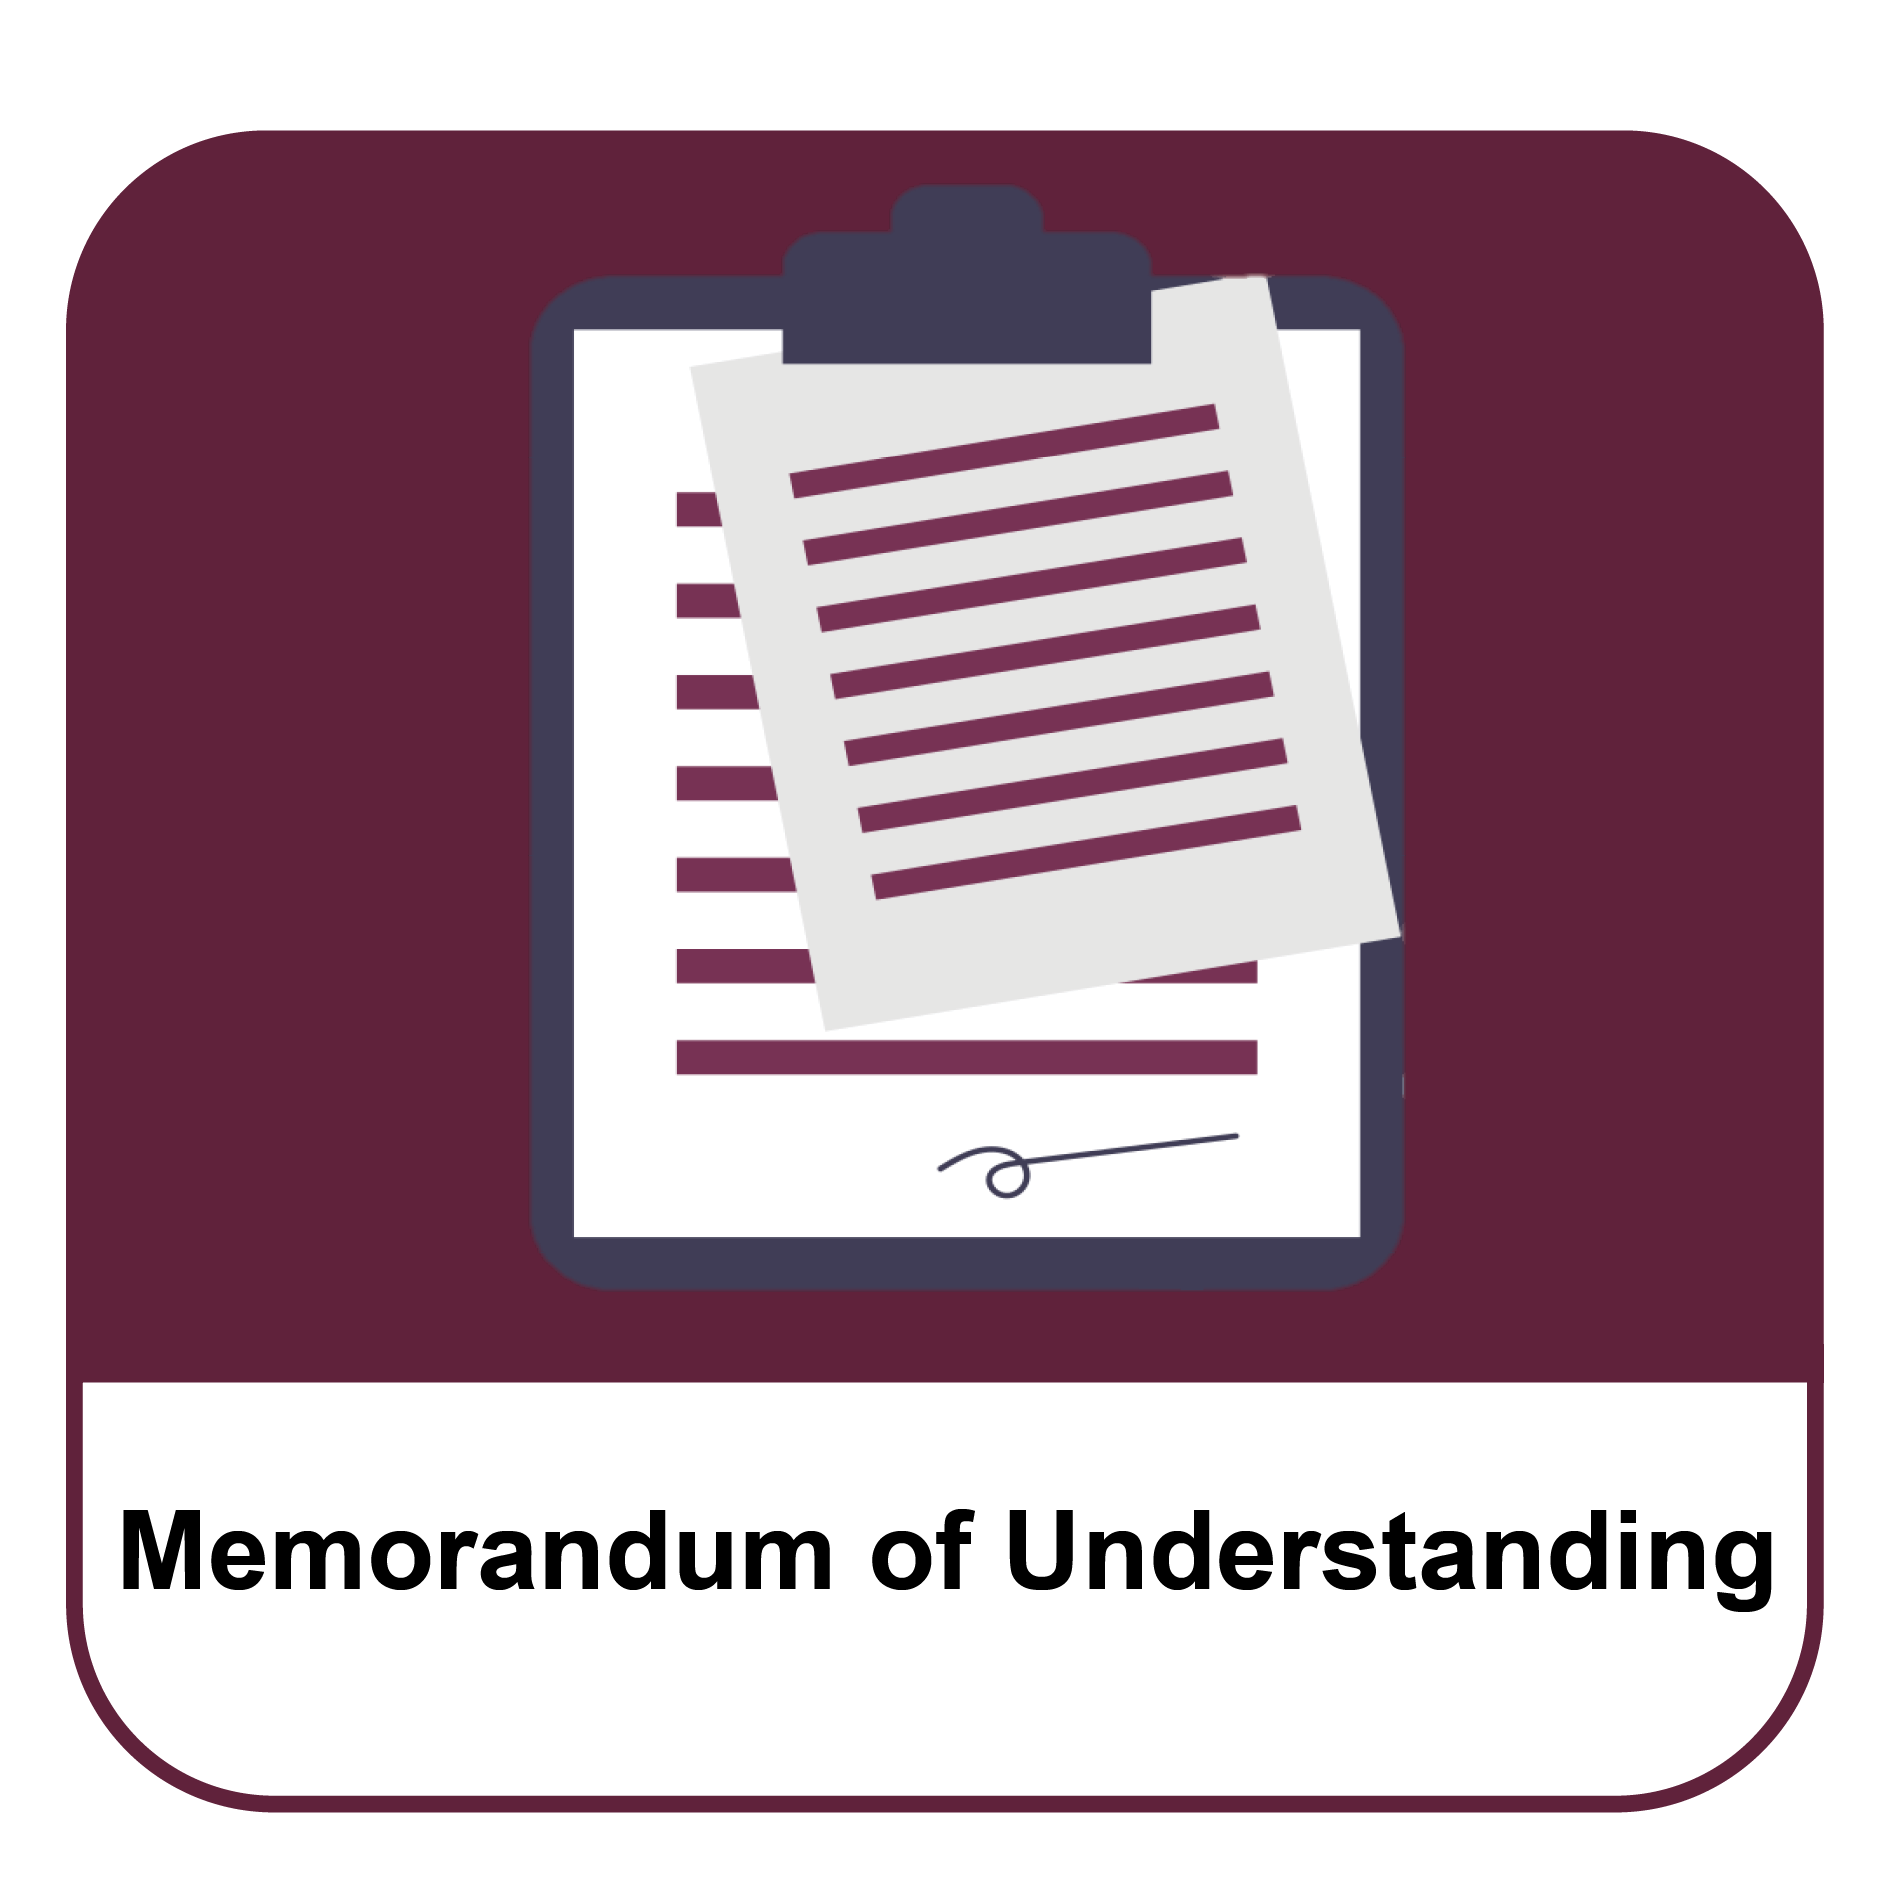 Memorandum of understanding icon resources.png